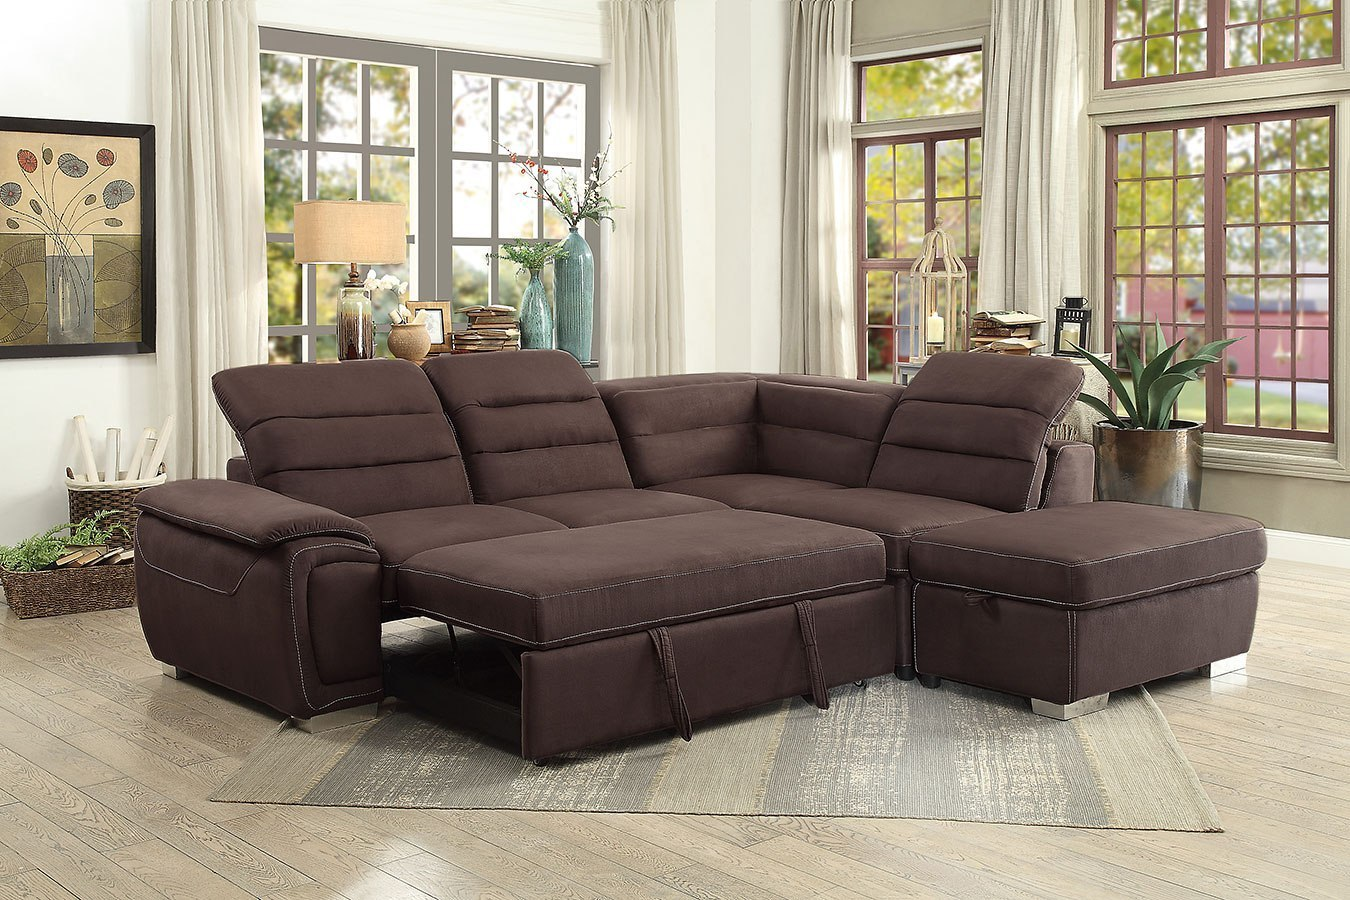 Platina Sectional w/ Pull out Bed and Storage Ottoman by ...